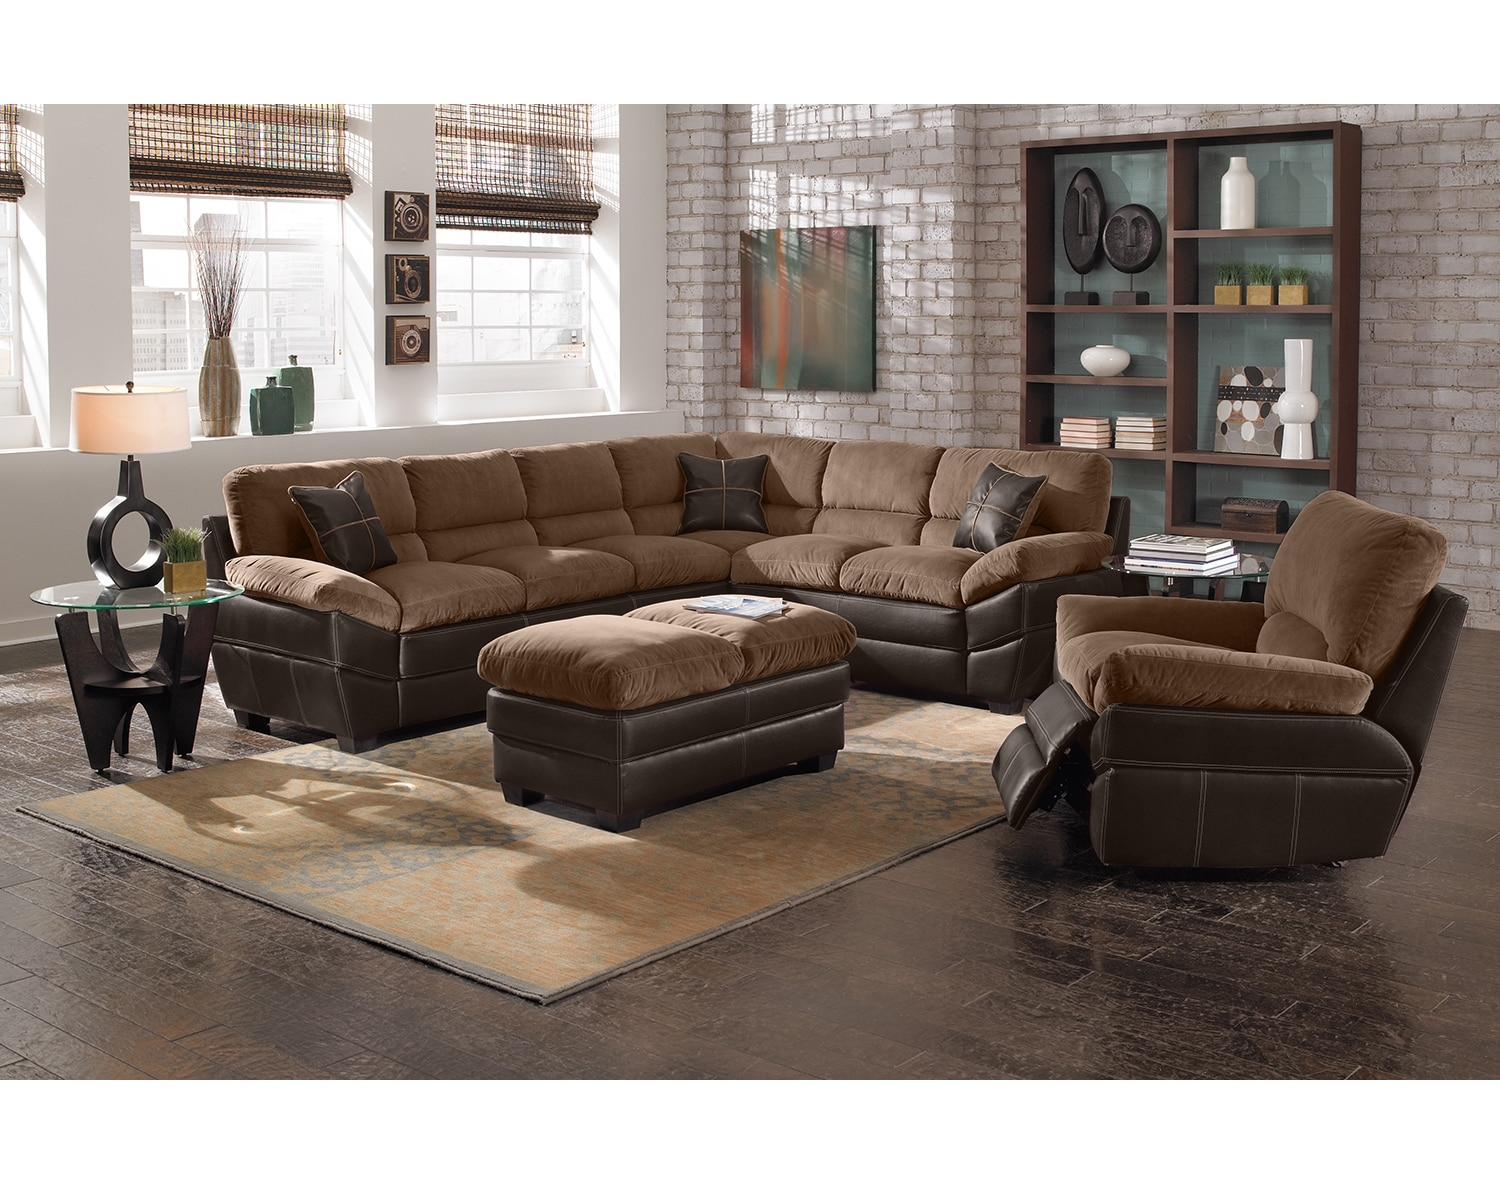 Value City Living Room Furniture The Chandler Sectional Collection Beige Value City Furniture